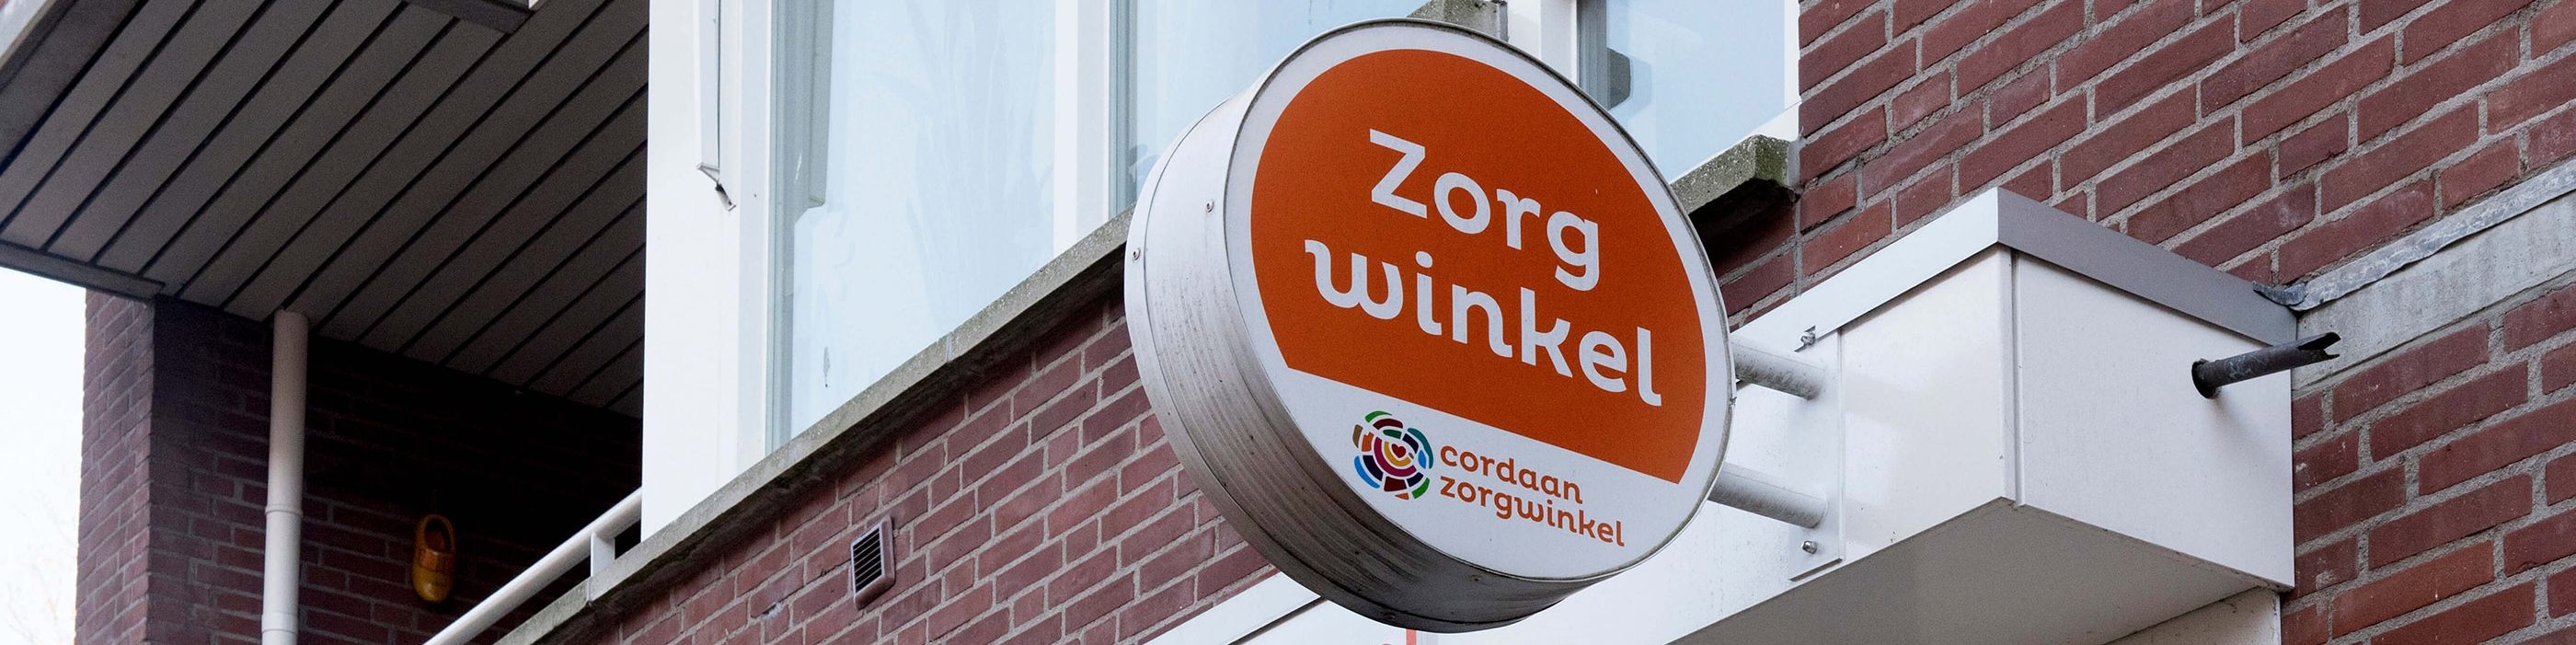 Zorgwinkel Commelinstraat (in De Gooyer)